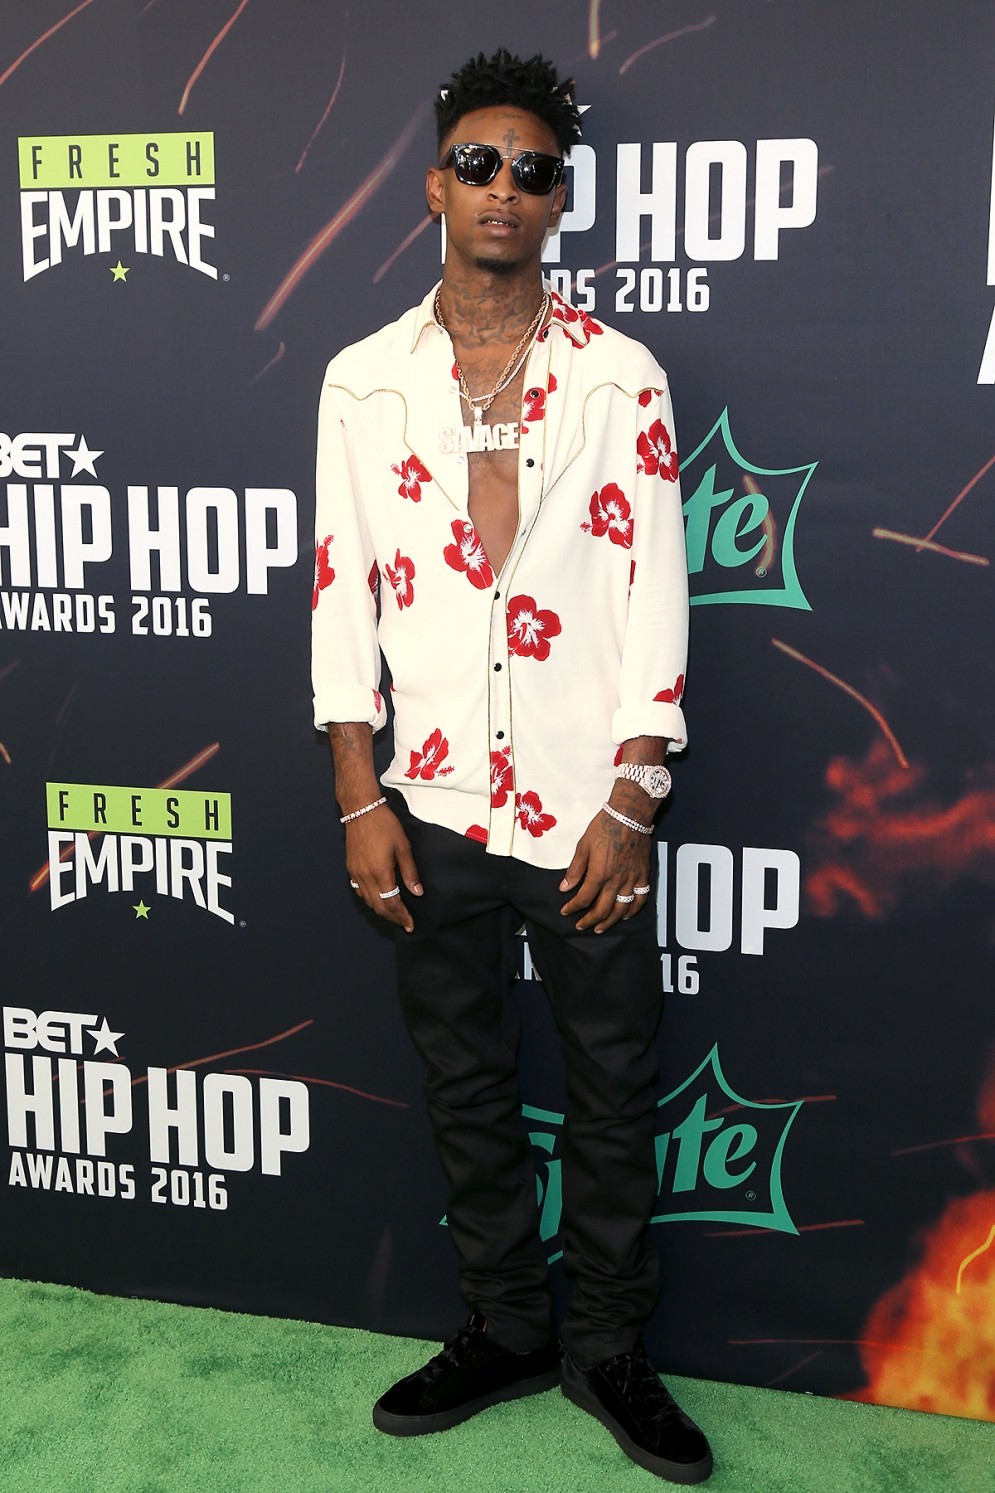 091716-shows-hha-red-carpet-rundown-2-21-savage